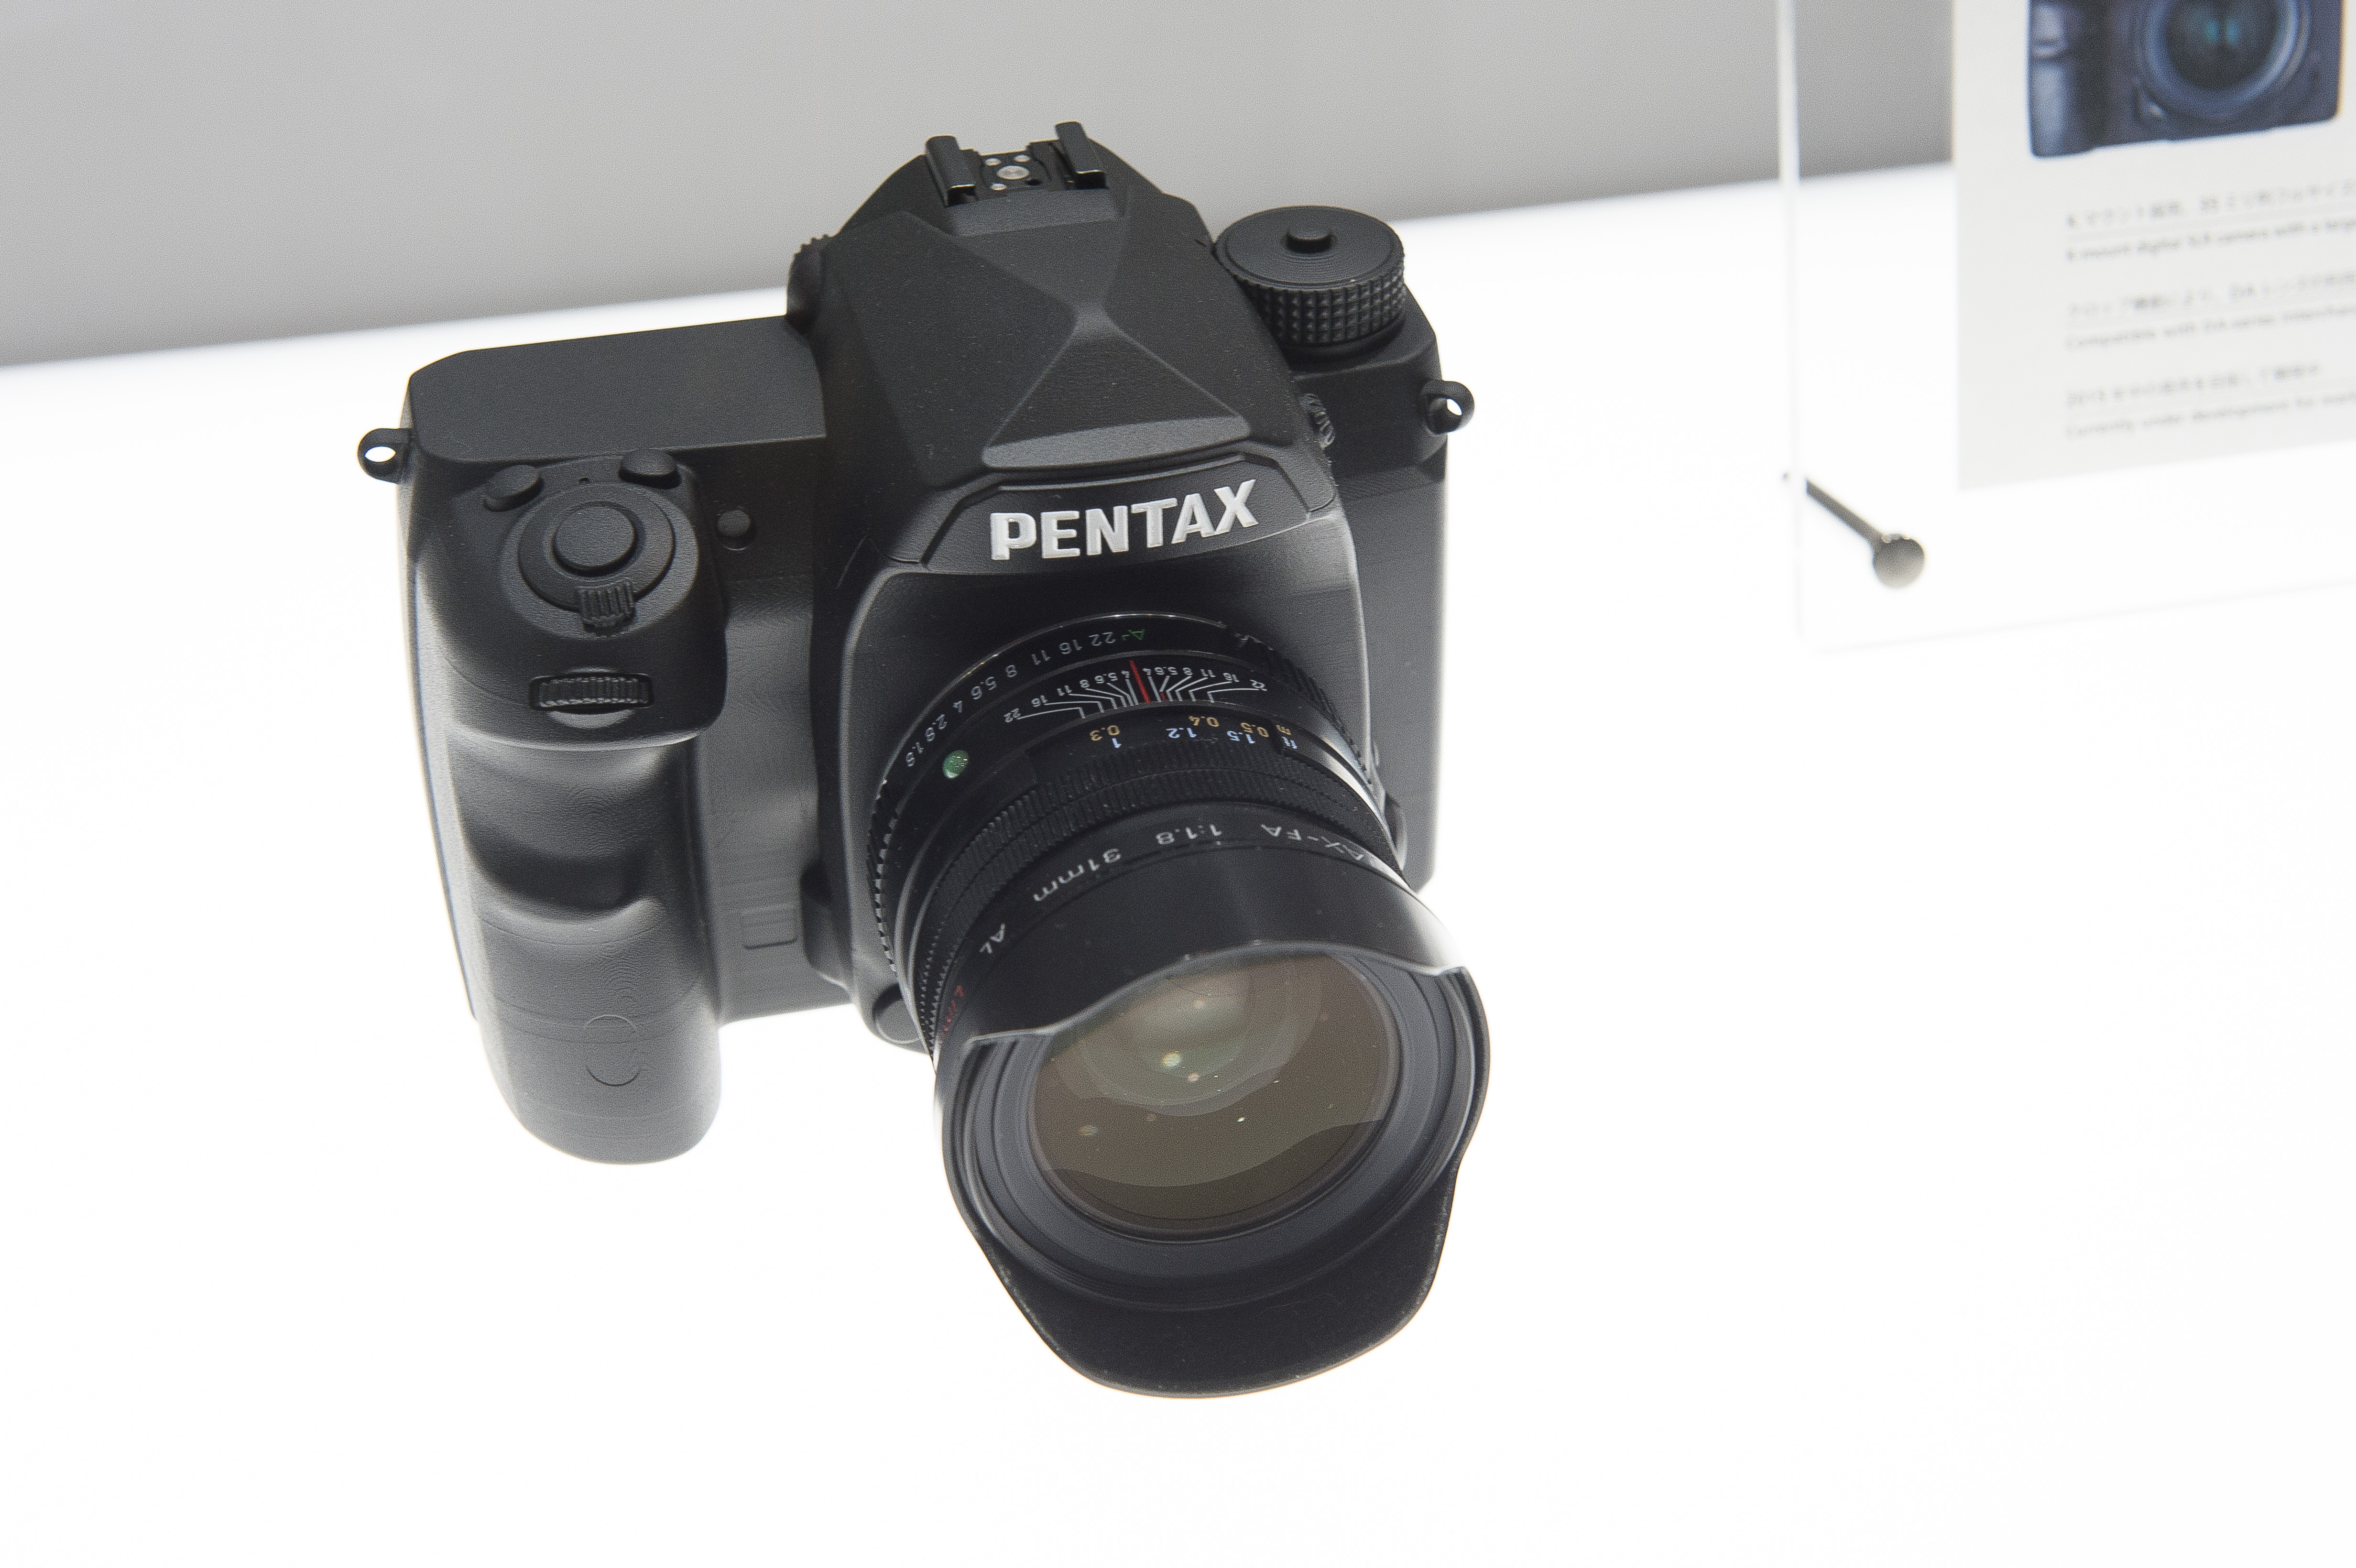 File:Pentax full-frame DSLR mock-up 01.jpg - Wikimedia Commons